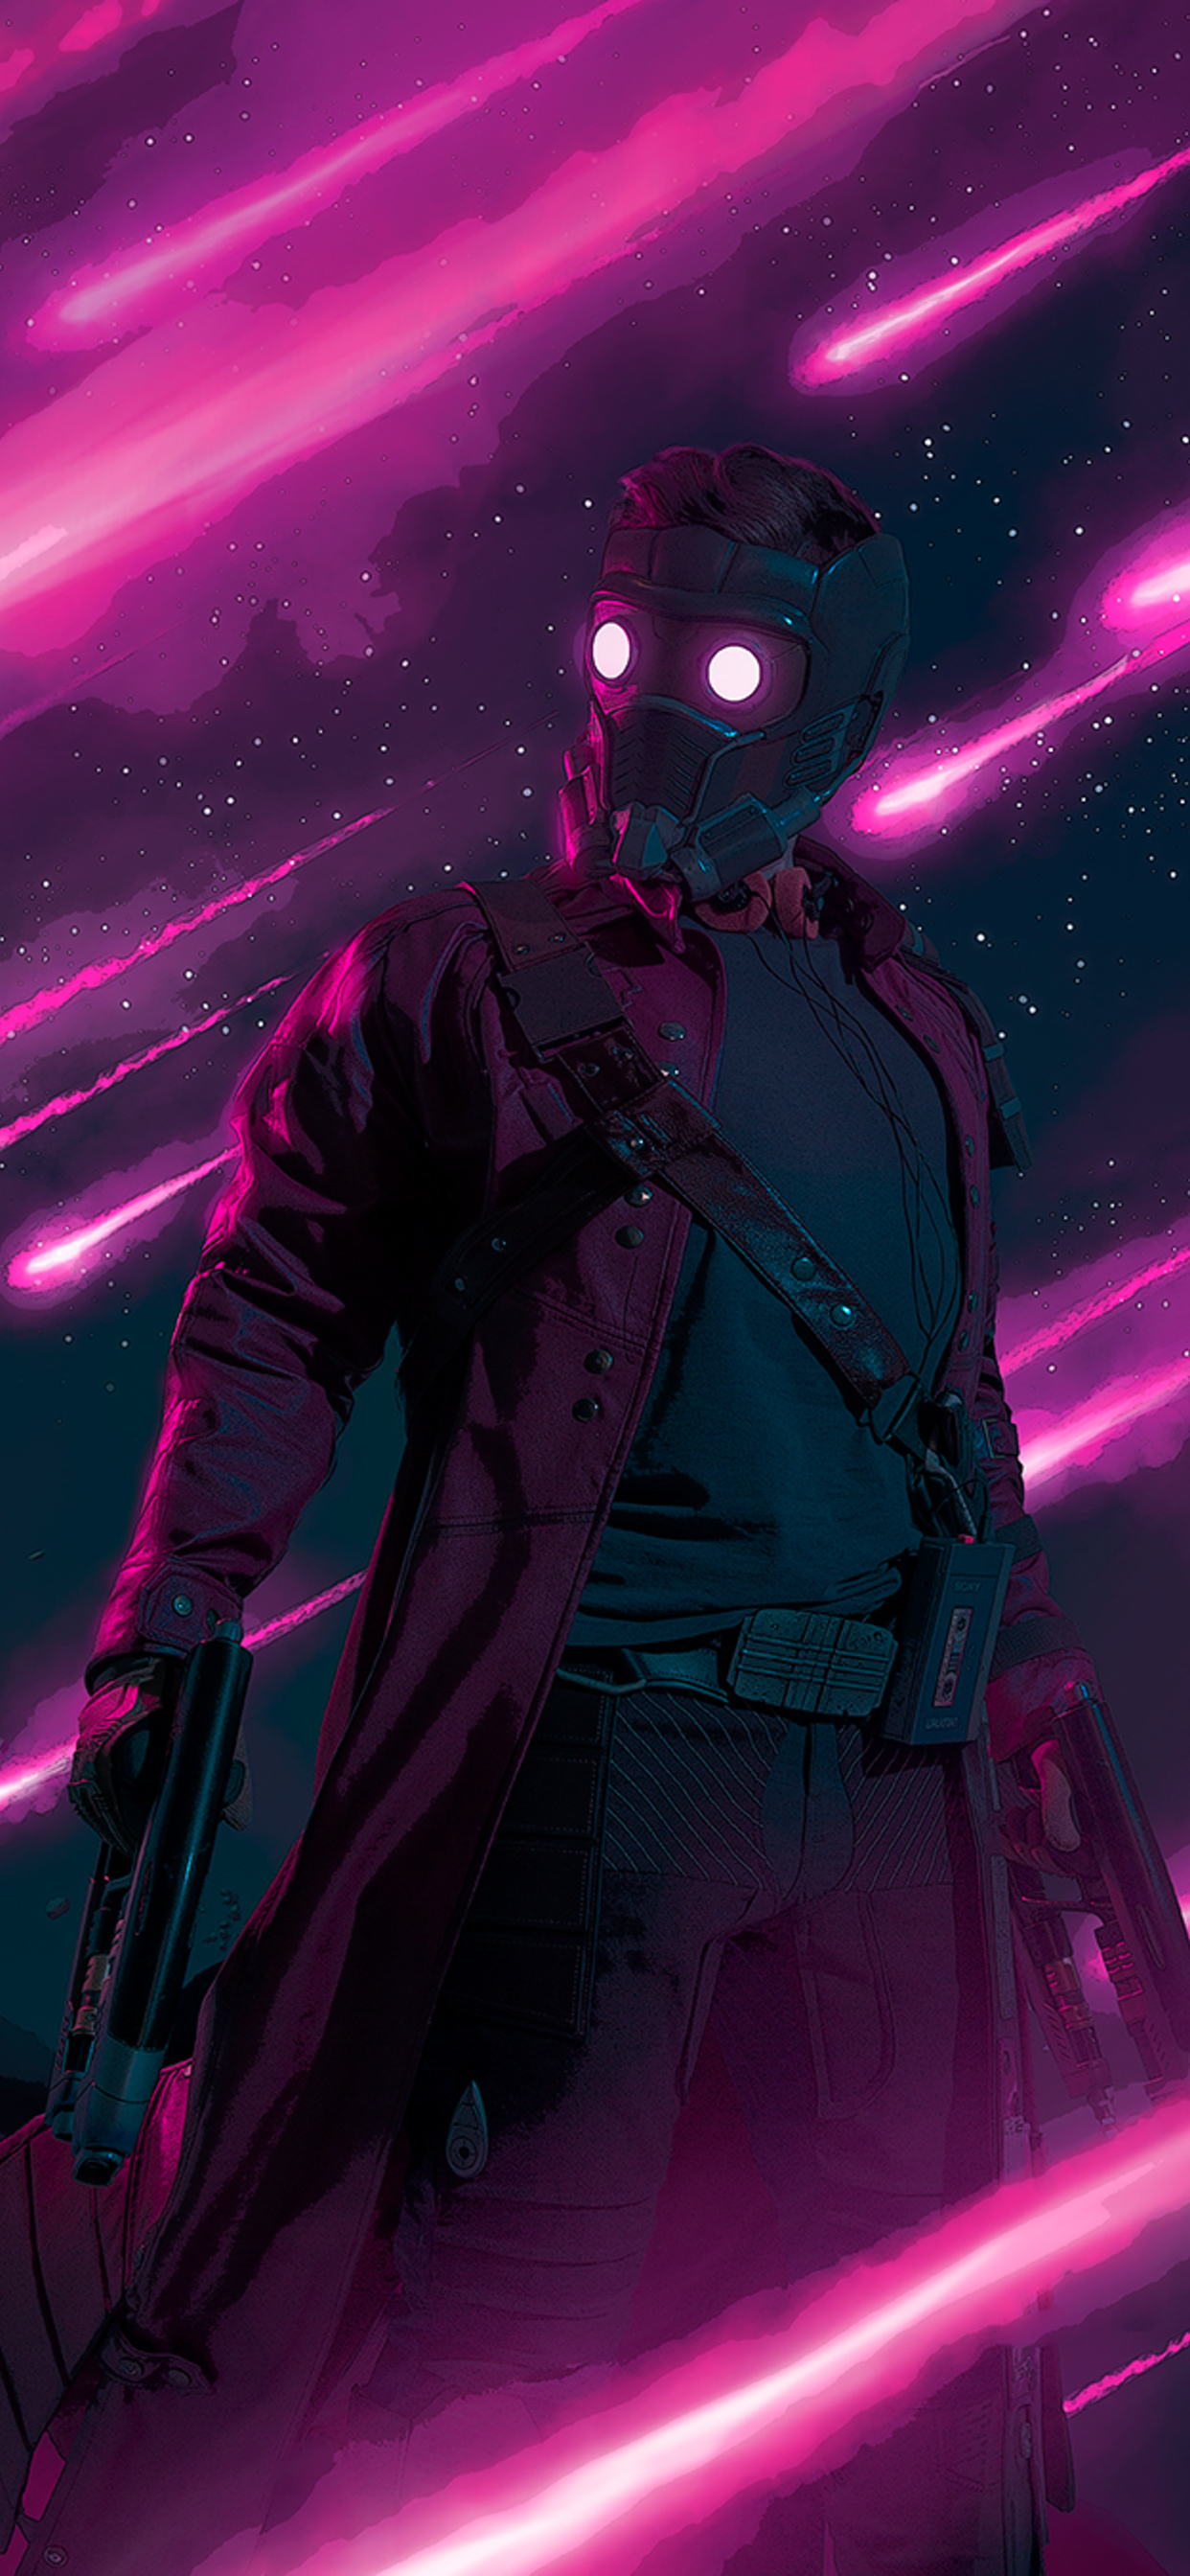 1242x2688 2019 Star Lord Iphone Xs Max Hd 4k Wallpapers